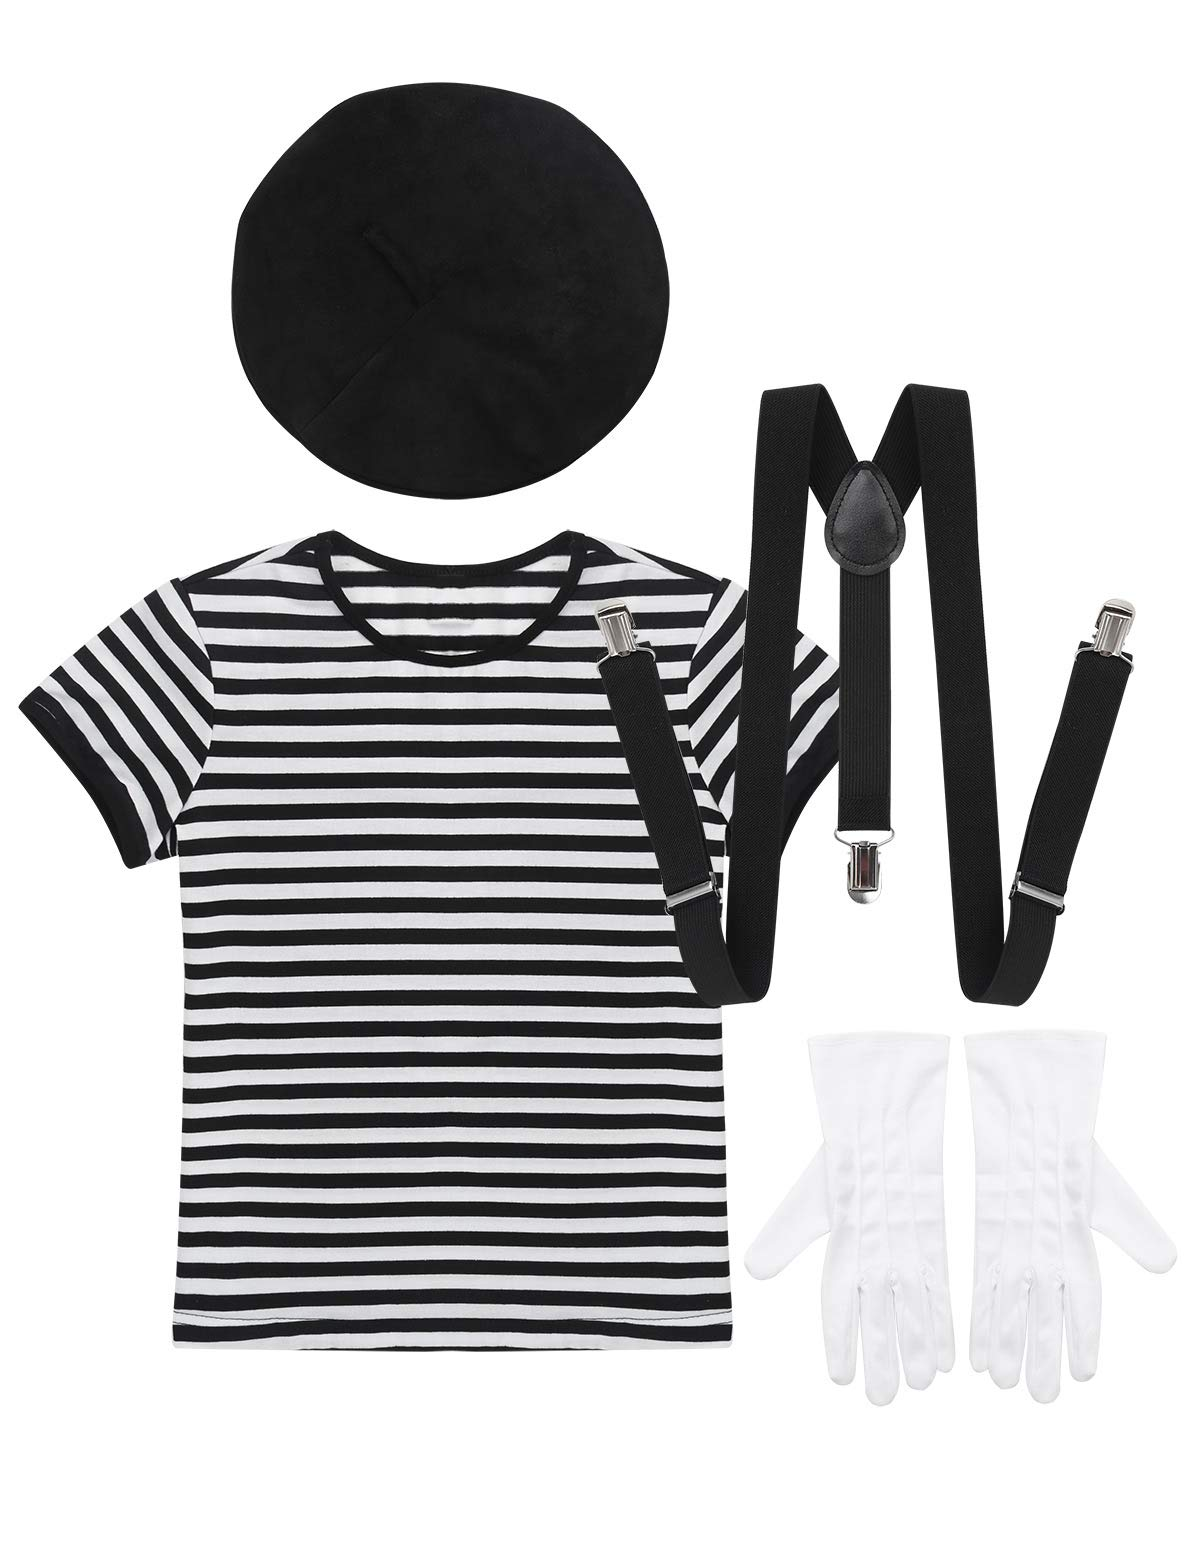 CHICTRY Kids Boys Girls Mime Artist Costume Novelty French Style 4 PCS Beret Hat Clothes Set Halloween Cosplay Party Outfit